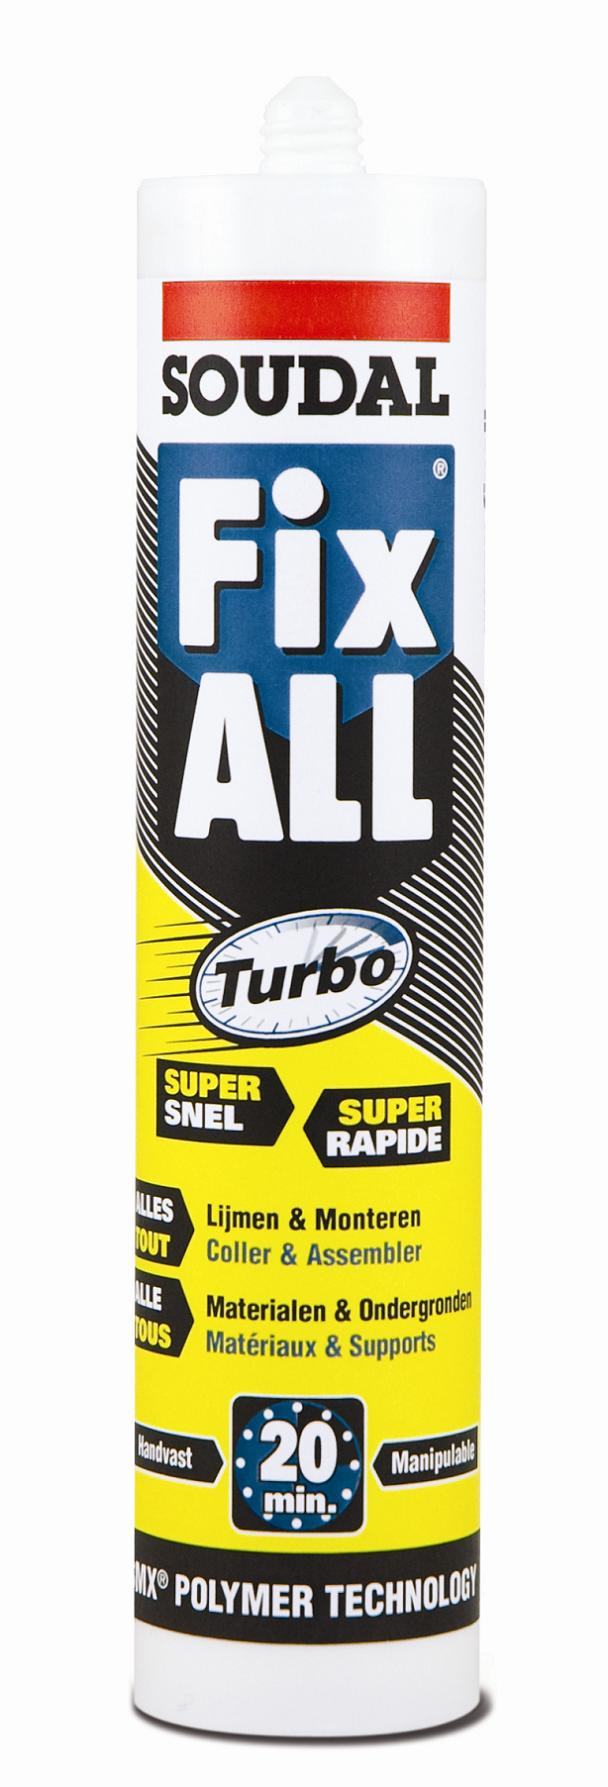 soudal_fix_all_turbo.jpg